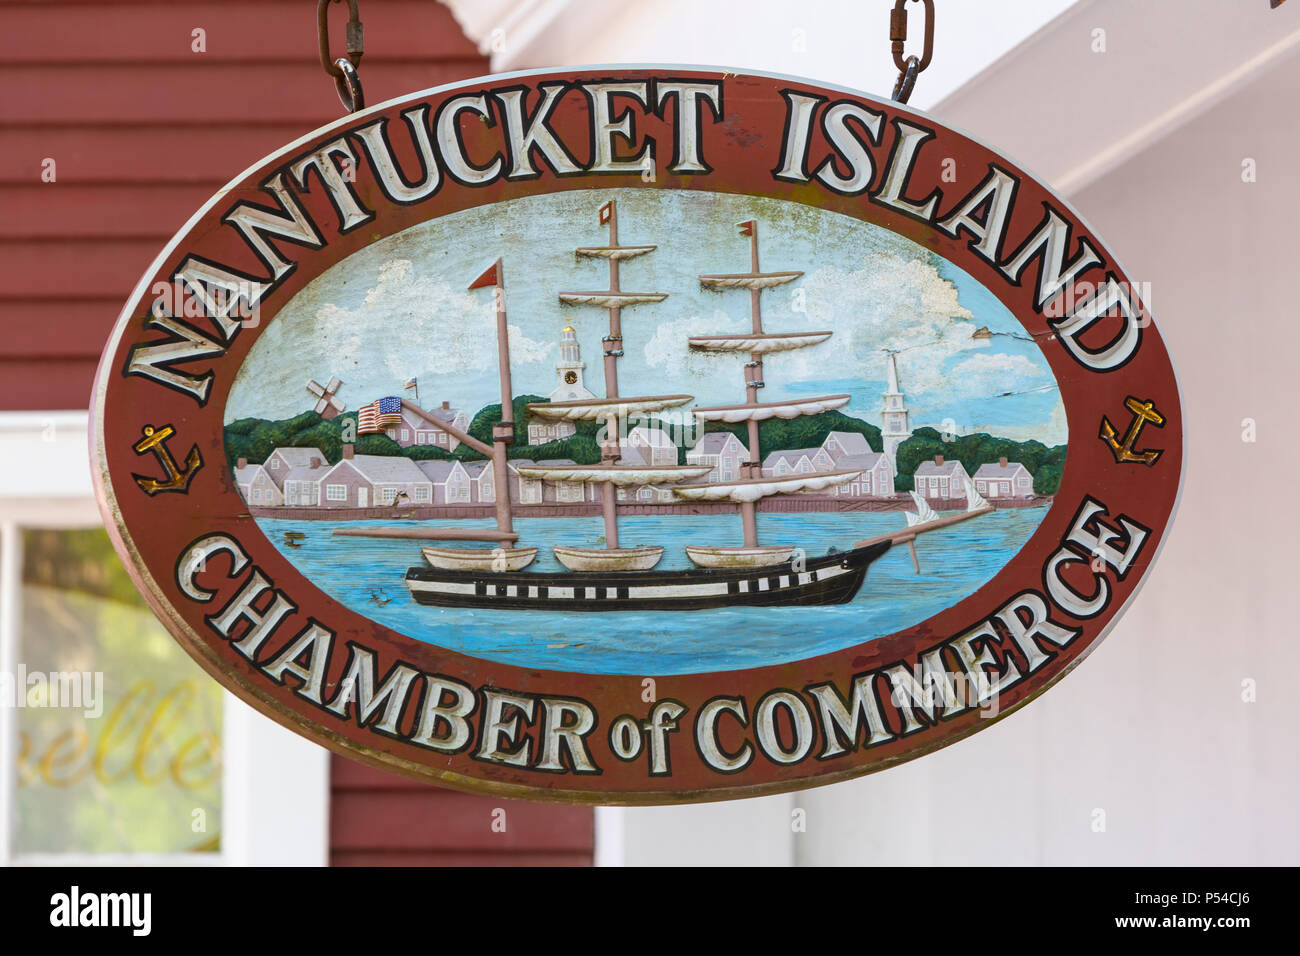 Sign hanging in front of the Nantucket Island Chamber of Commerce in Nantucket, Massachusetts. - Stock Image